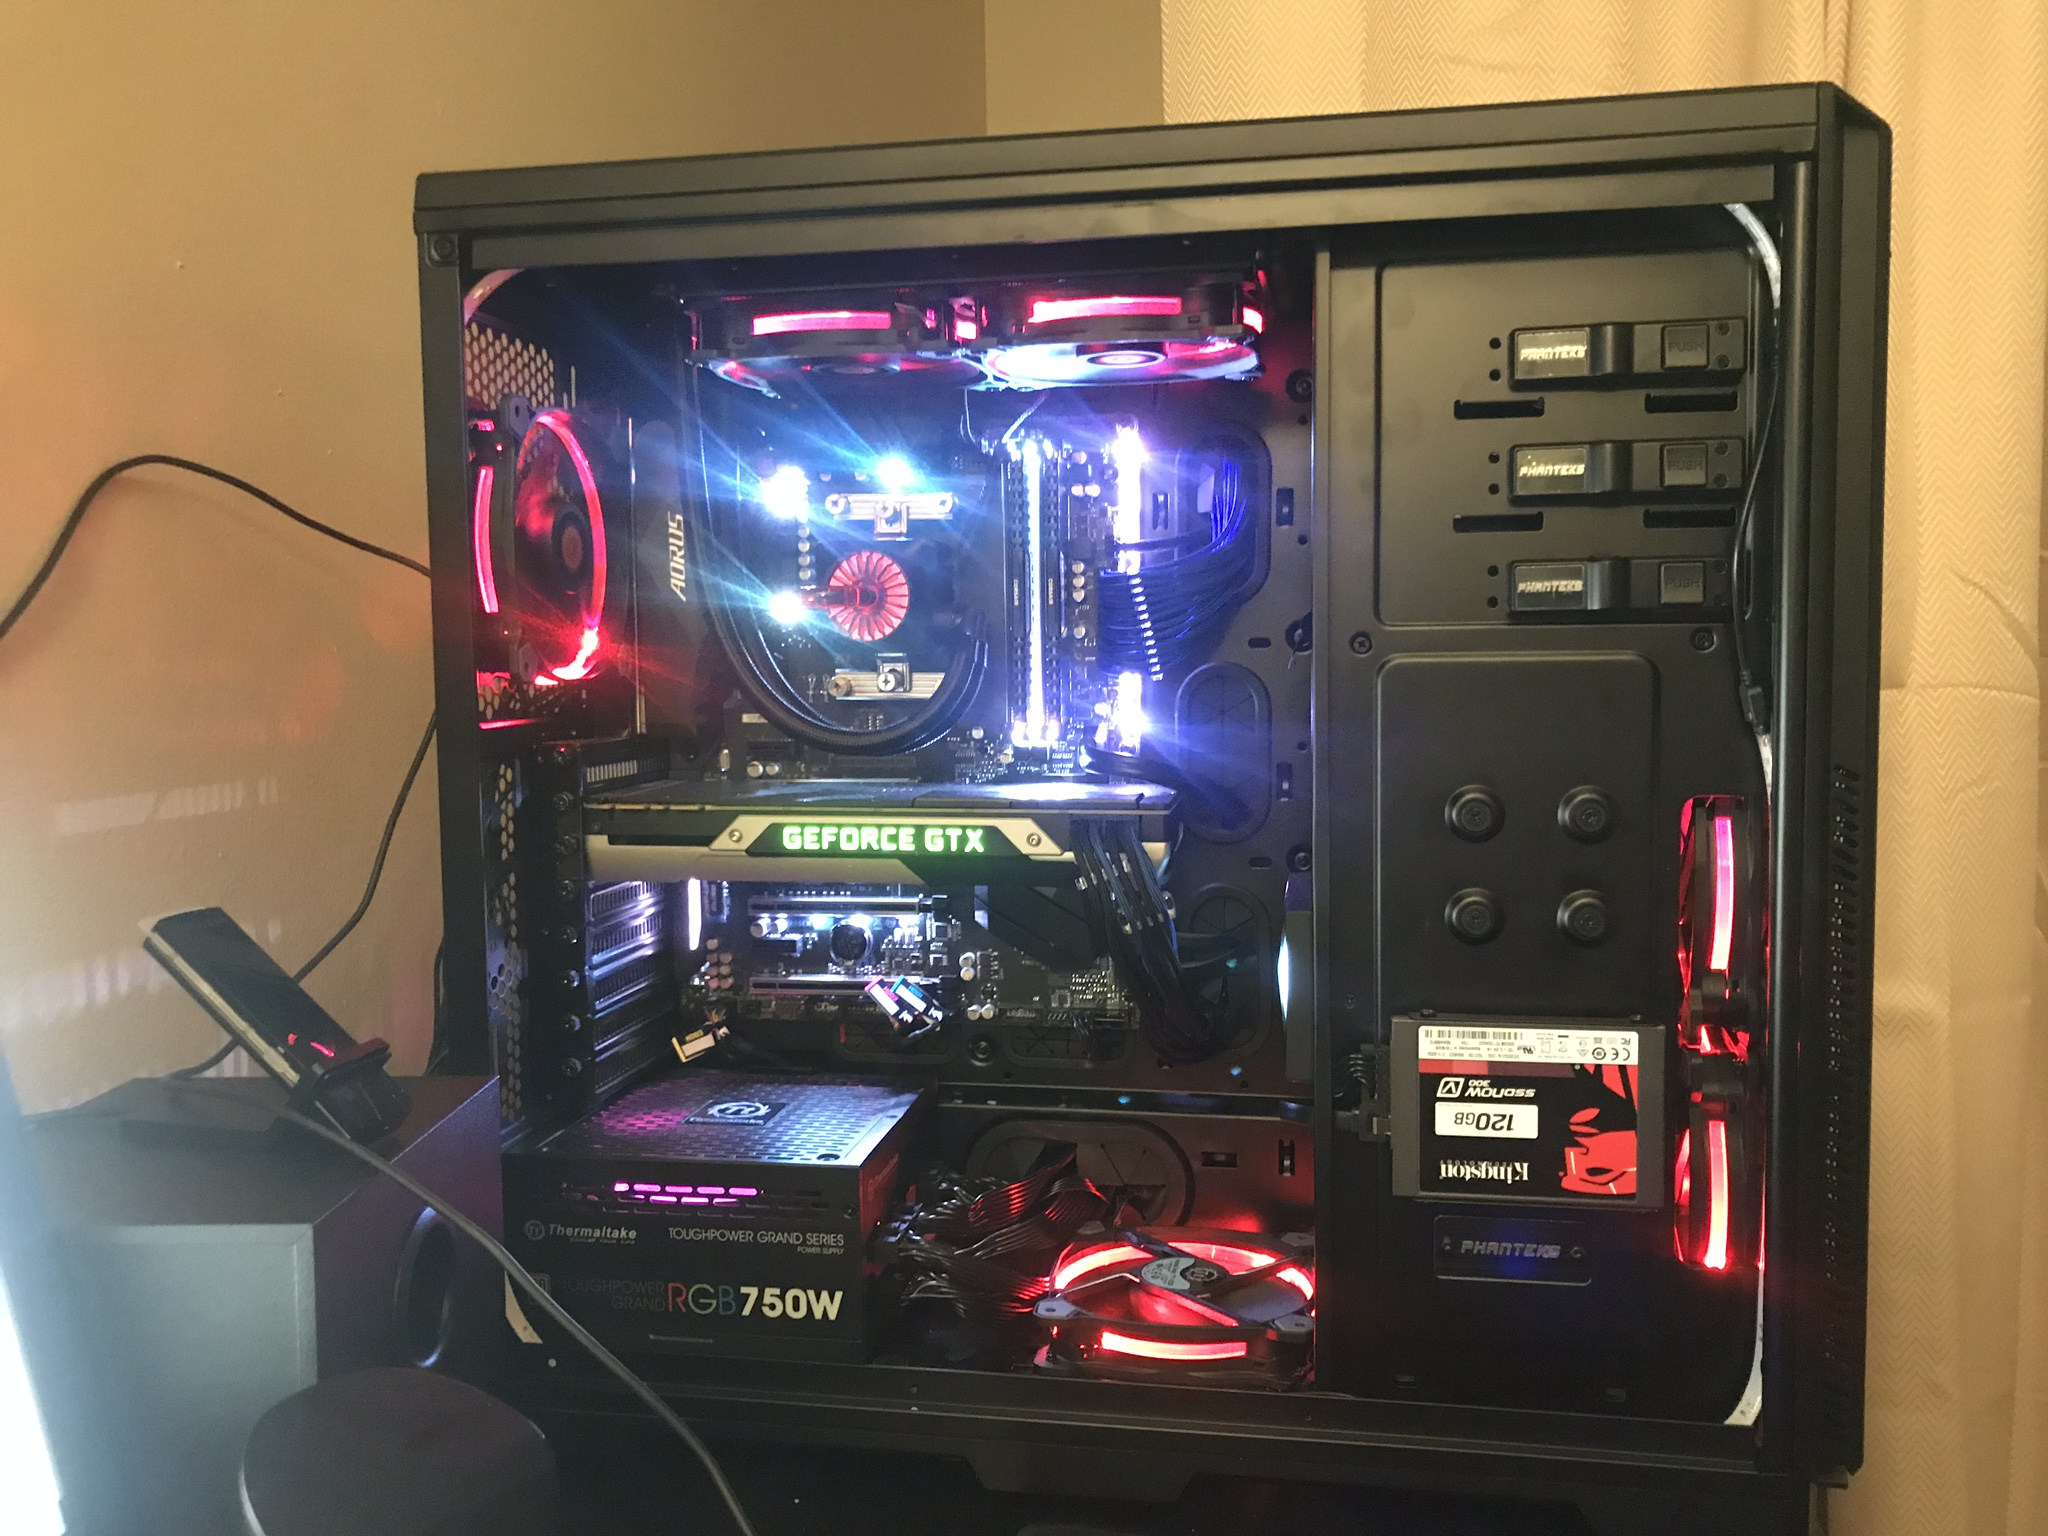 Guide How To Connect Up 6 Riing Rgb Fans In 1 Controller Case 4 Pin Computer Fan Wire Diagram 6debf9ae 189a 48b4 B823 A6a829f48e86jpeg